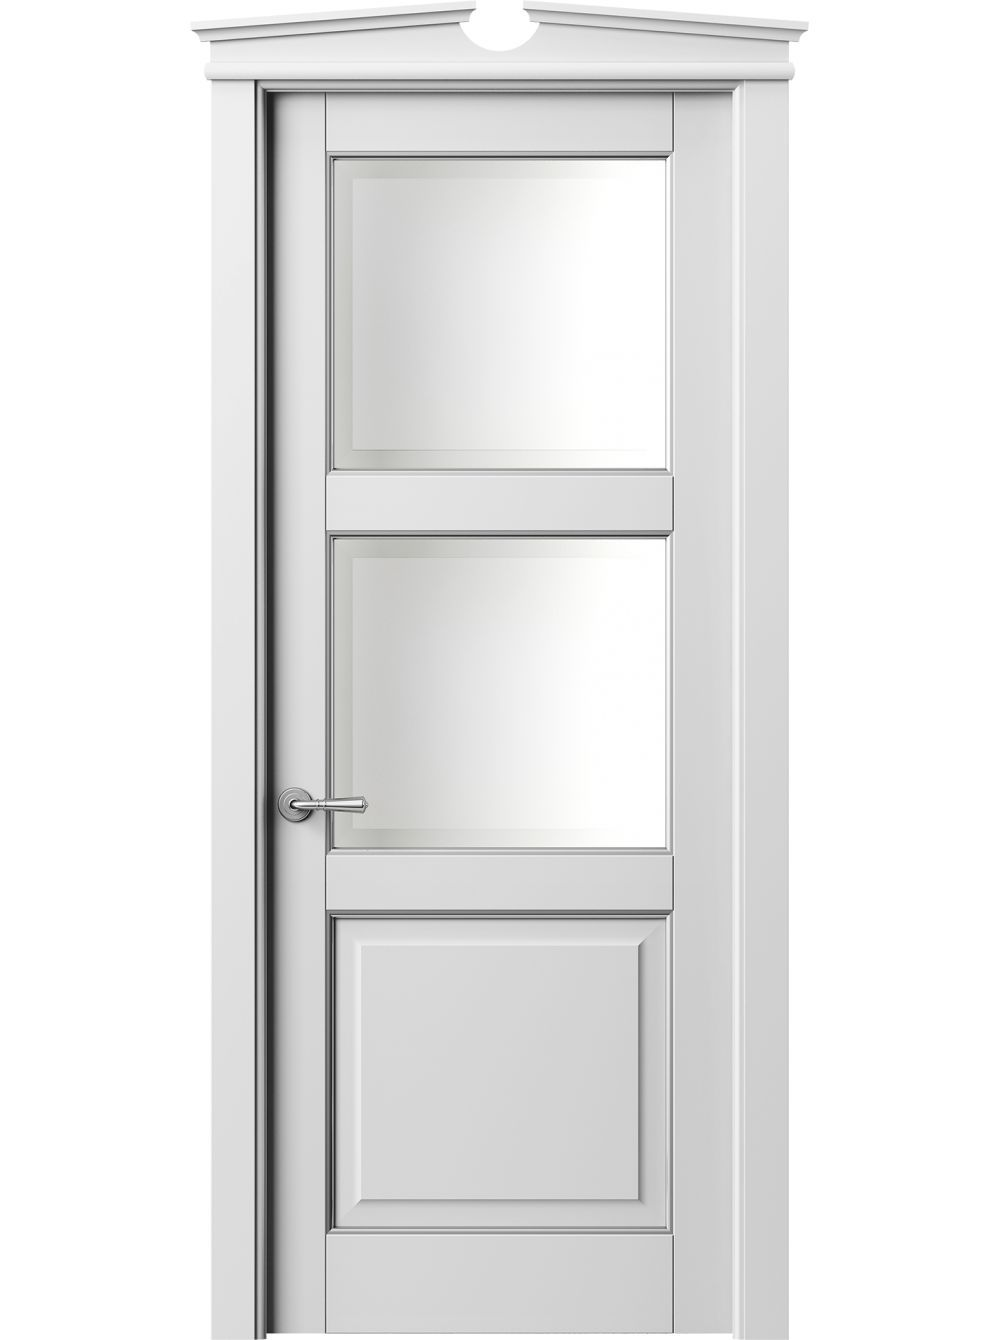 Solid Wooden Door With A Single Panel Is Sound And Promises A Personalized Style All Of The Product Doors Interior Discount Interior Doors Wood Doors Interior